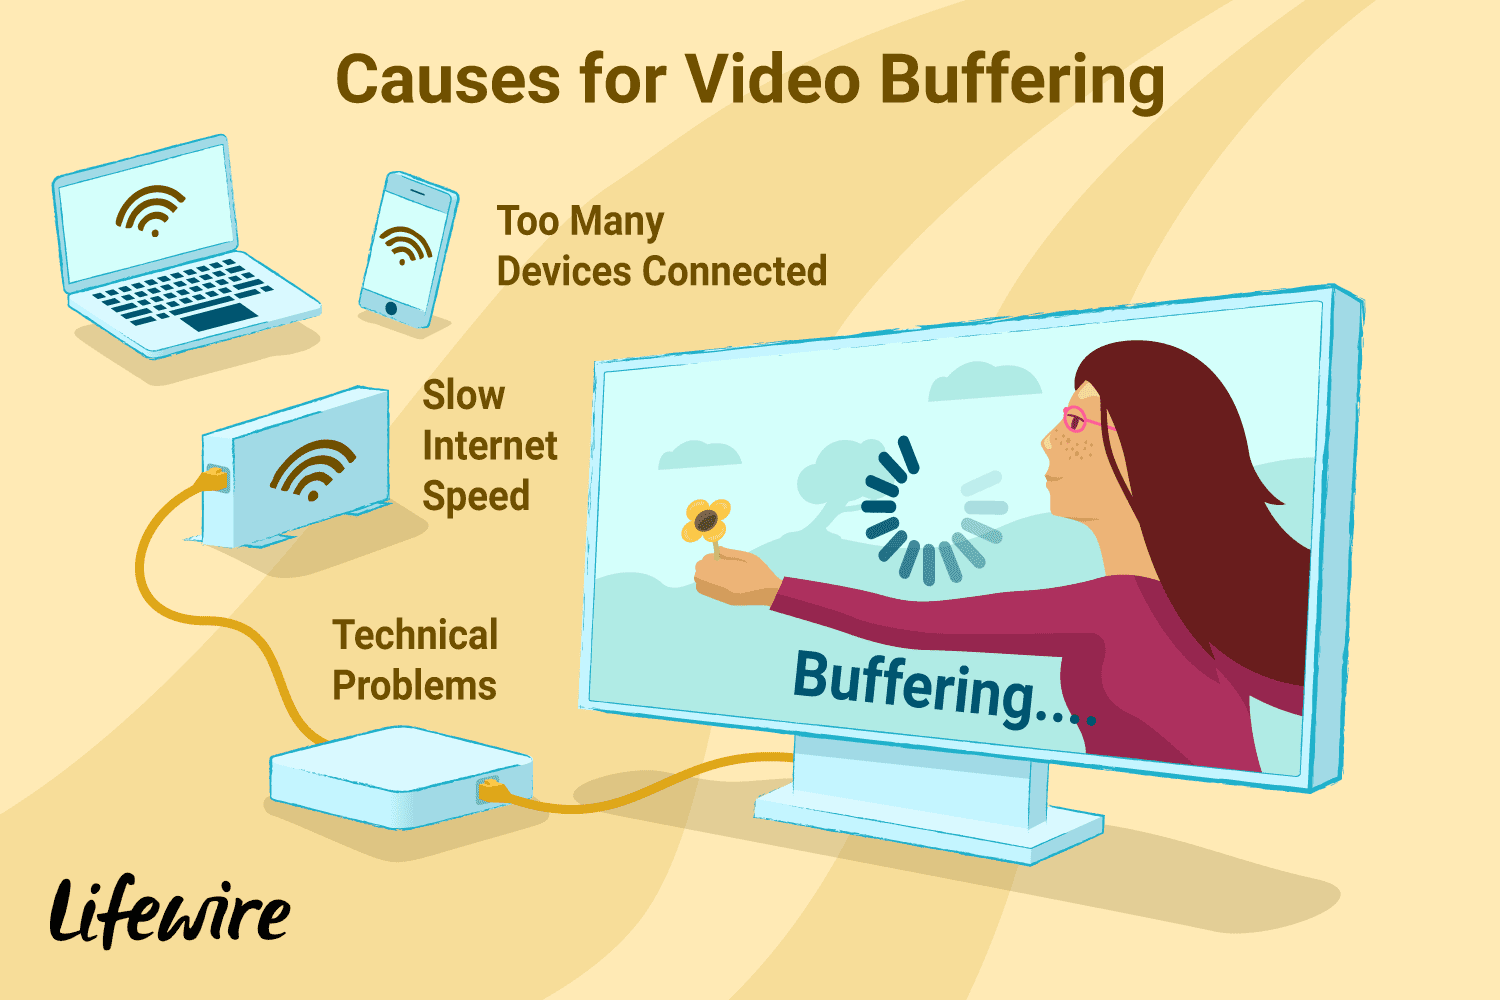 How to Avoid Buffering When Streaming Video